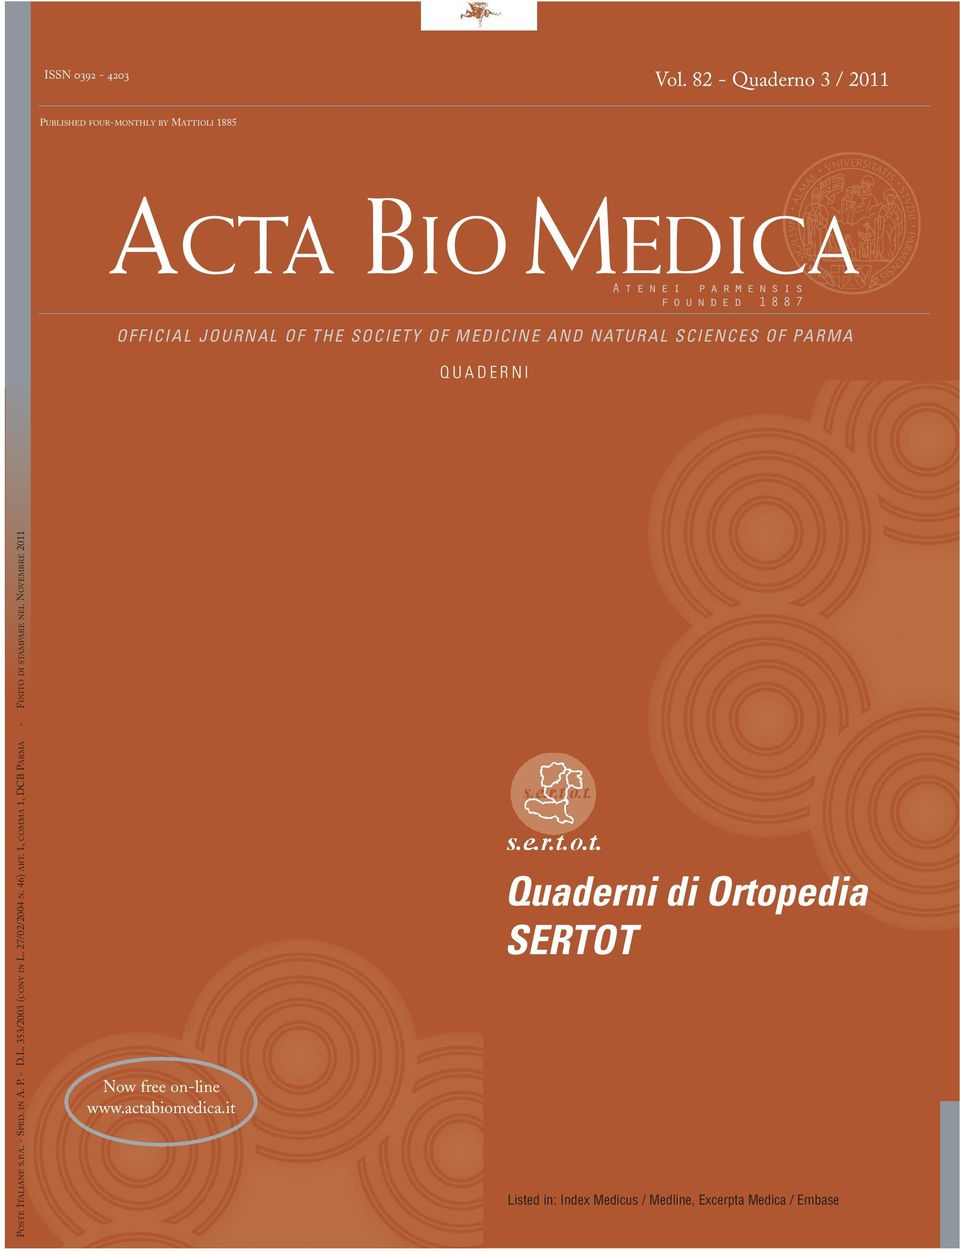 7 OFFICIAL JOURNAL OF THE SOCIETY OF MEDICINE AND NATURAL SCIENCES OF PARMA Q U A D E R N I POSTE ITALIANE S.P.A. - SPED. IN A. P. - D.